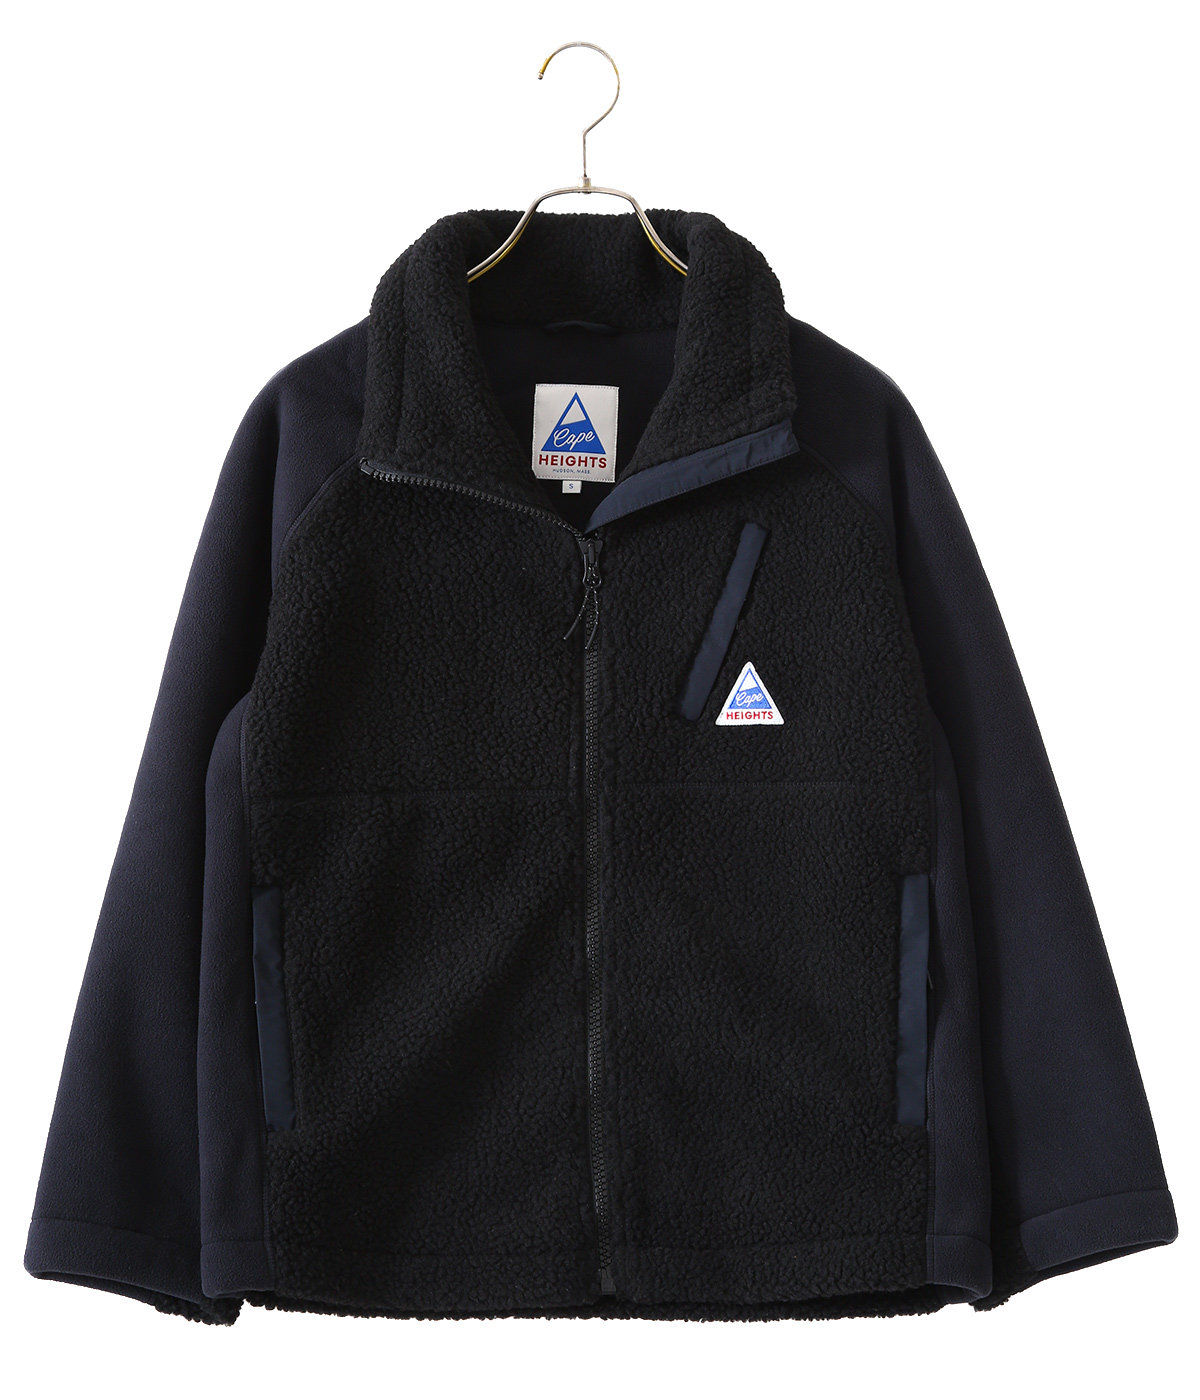 【レディース】BREAKHEART Fleece